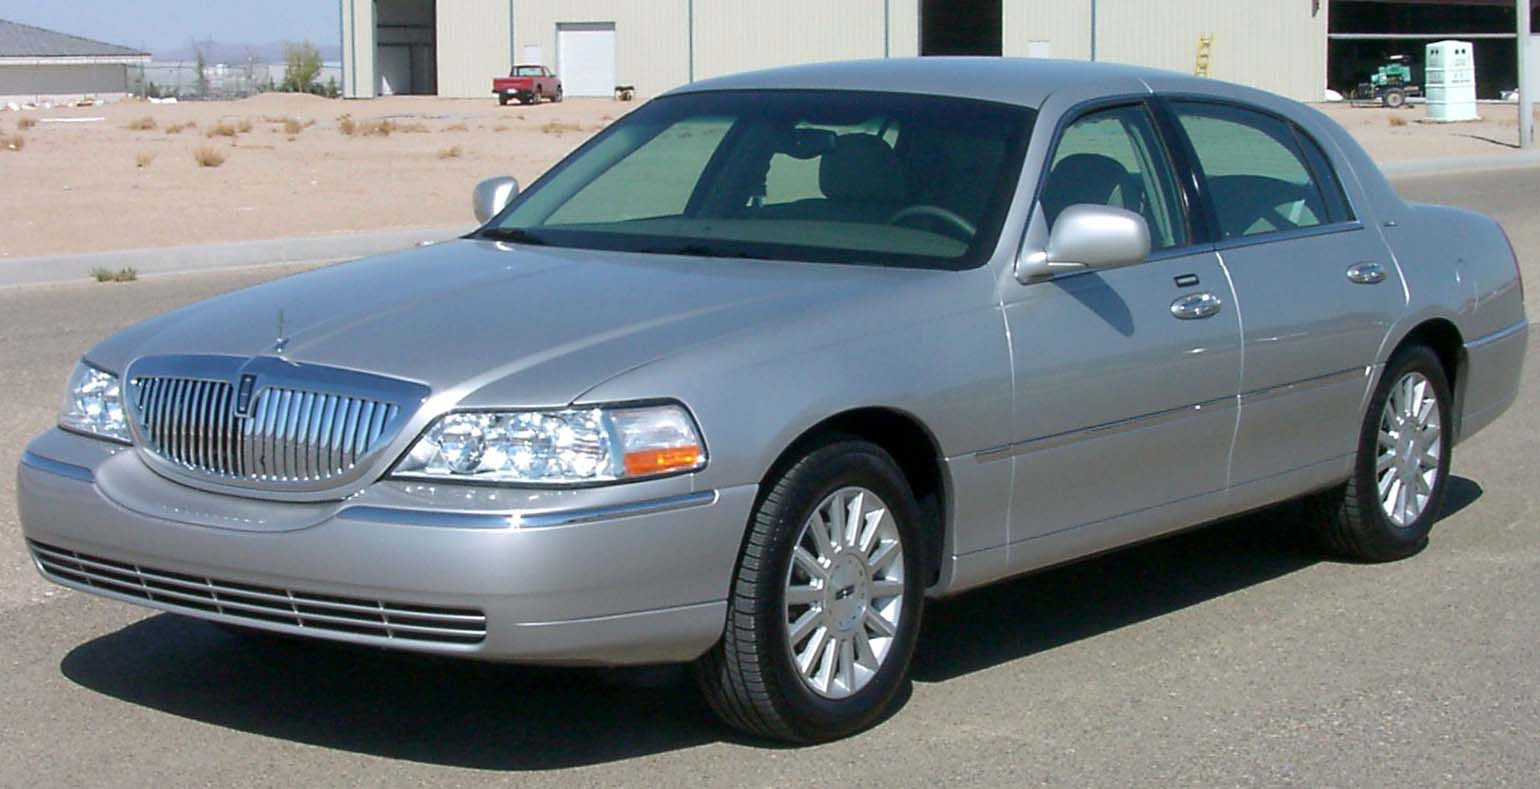 2003 lincoln town car pictures information and specs auto. Black Bedroom Furniture Sets. Home Design Ideas